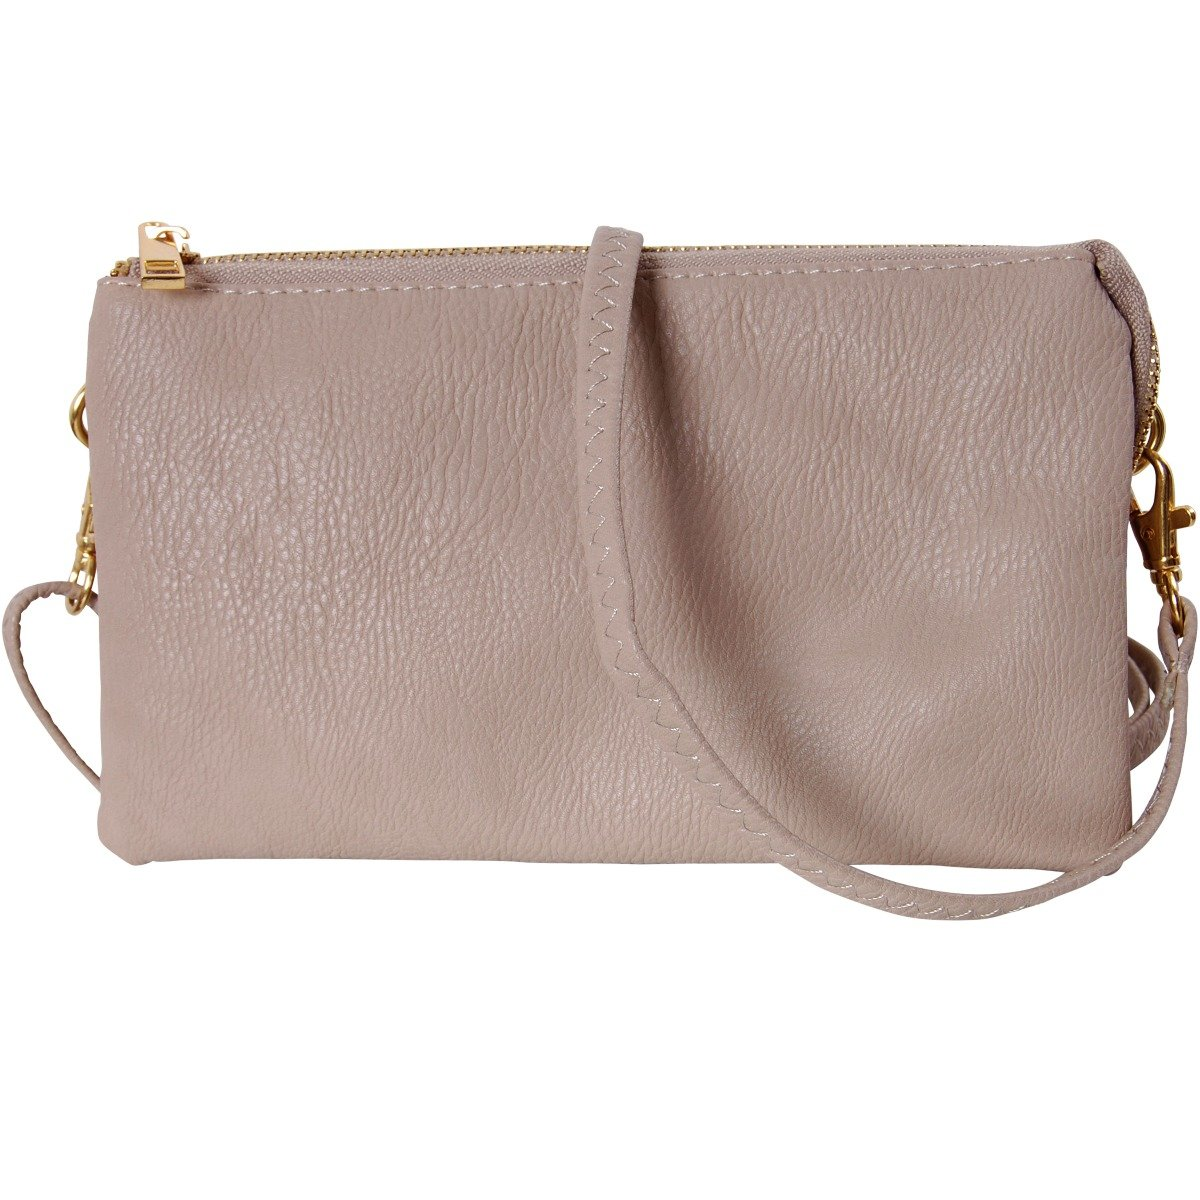 Humble Chic Vegan Leather Small Crossbody Bag or Wristlet Clutch Purse, Includes Adjustable Shoulder and Wrist Straps, Tan, Nude, Beige